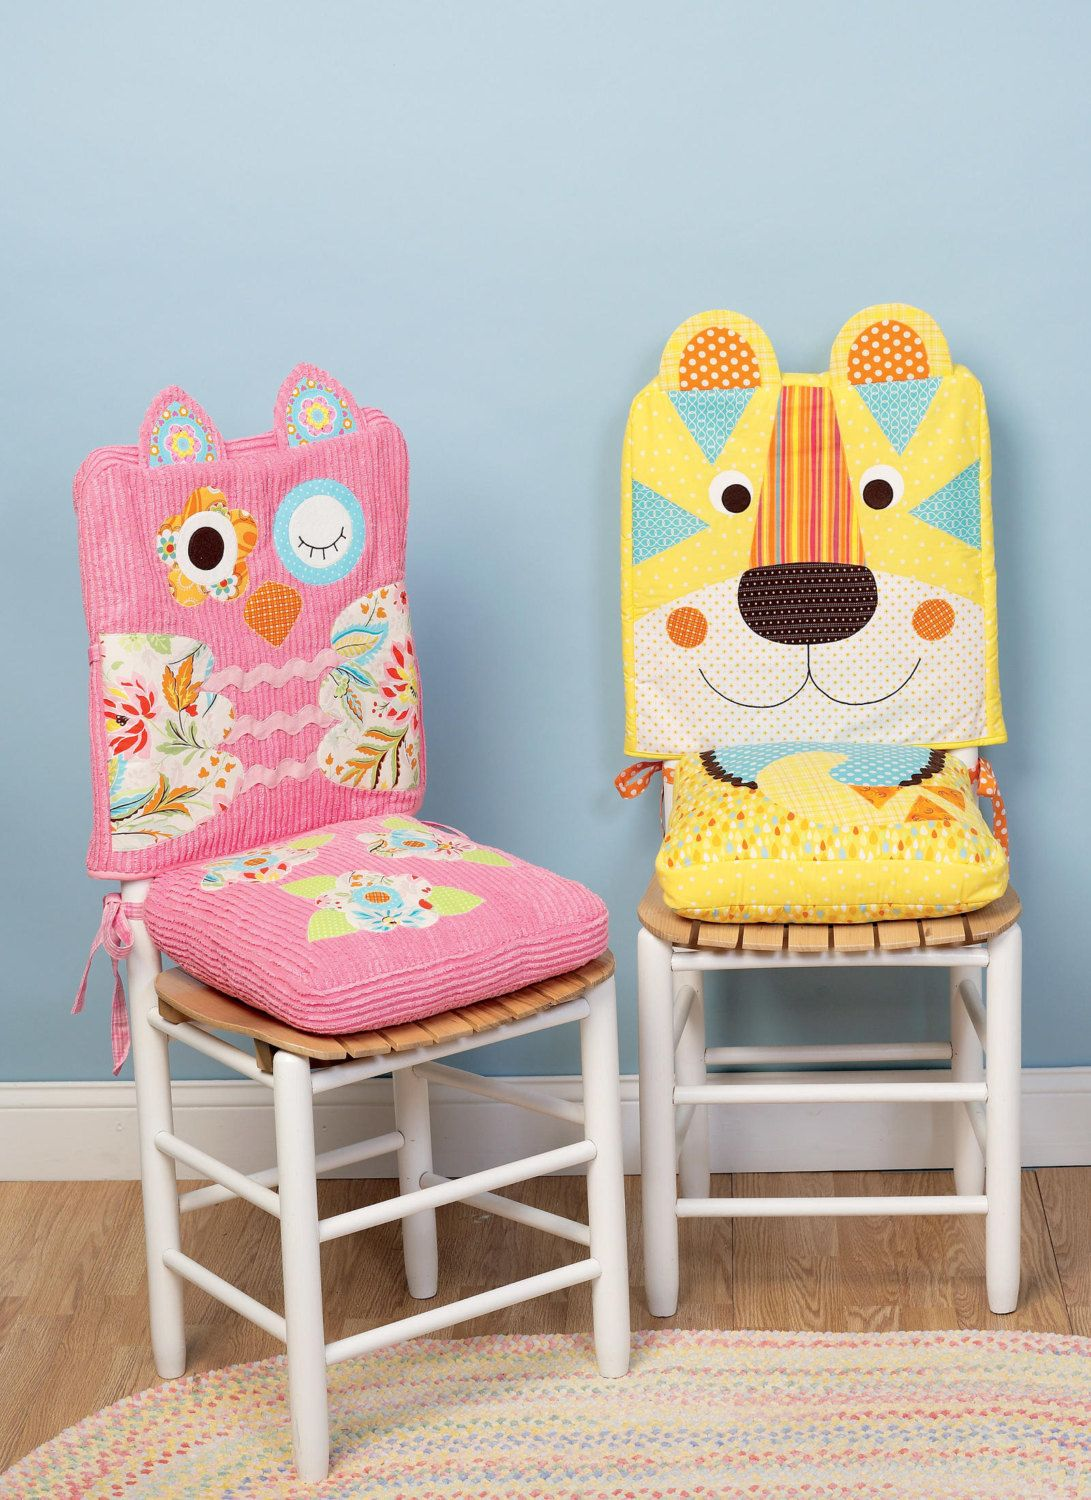 Sewing Pattern For Animal Motif Chair Covers And Seat Cushions Would Be Wonderful For A Childs Birthd Kids Chair Covers Chair Covers Party School Chair Covers